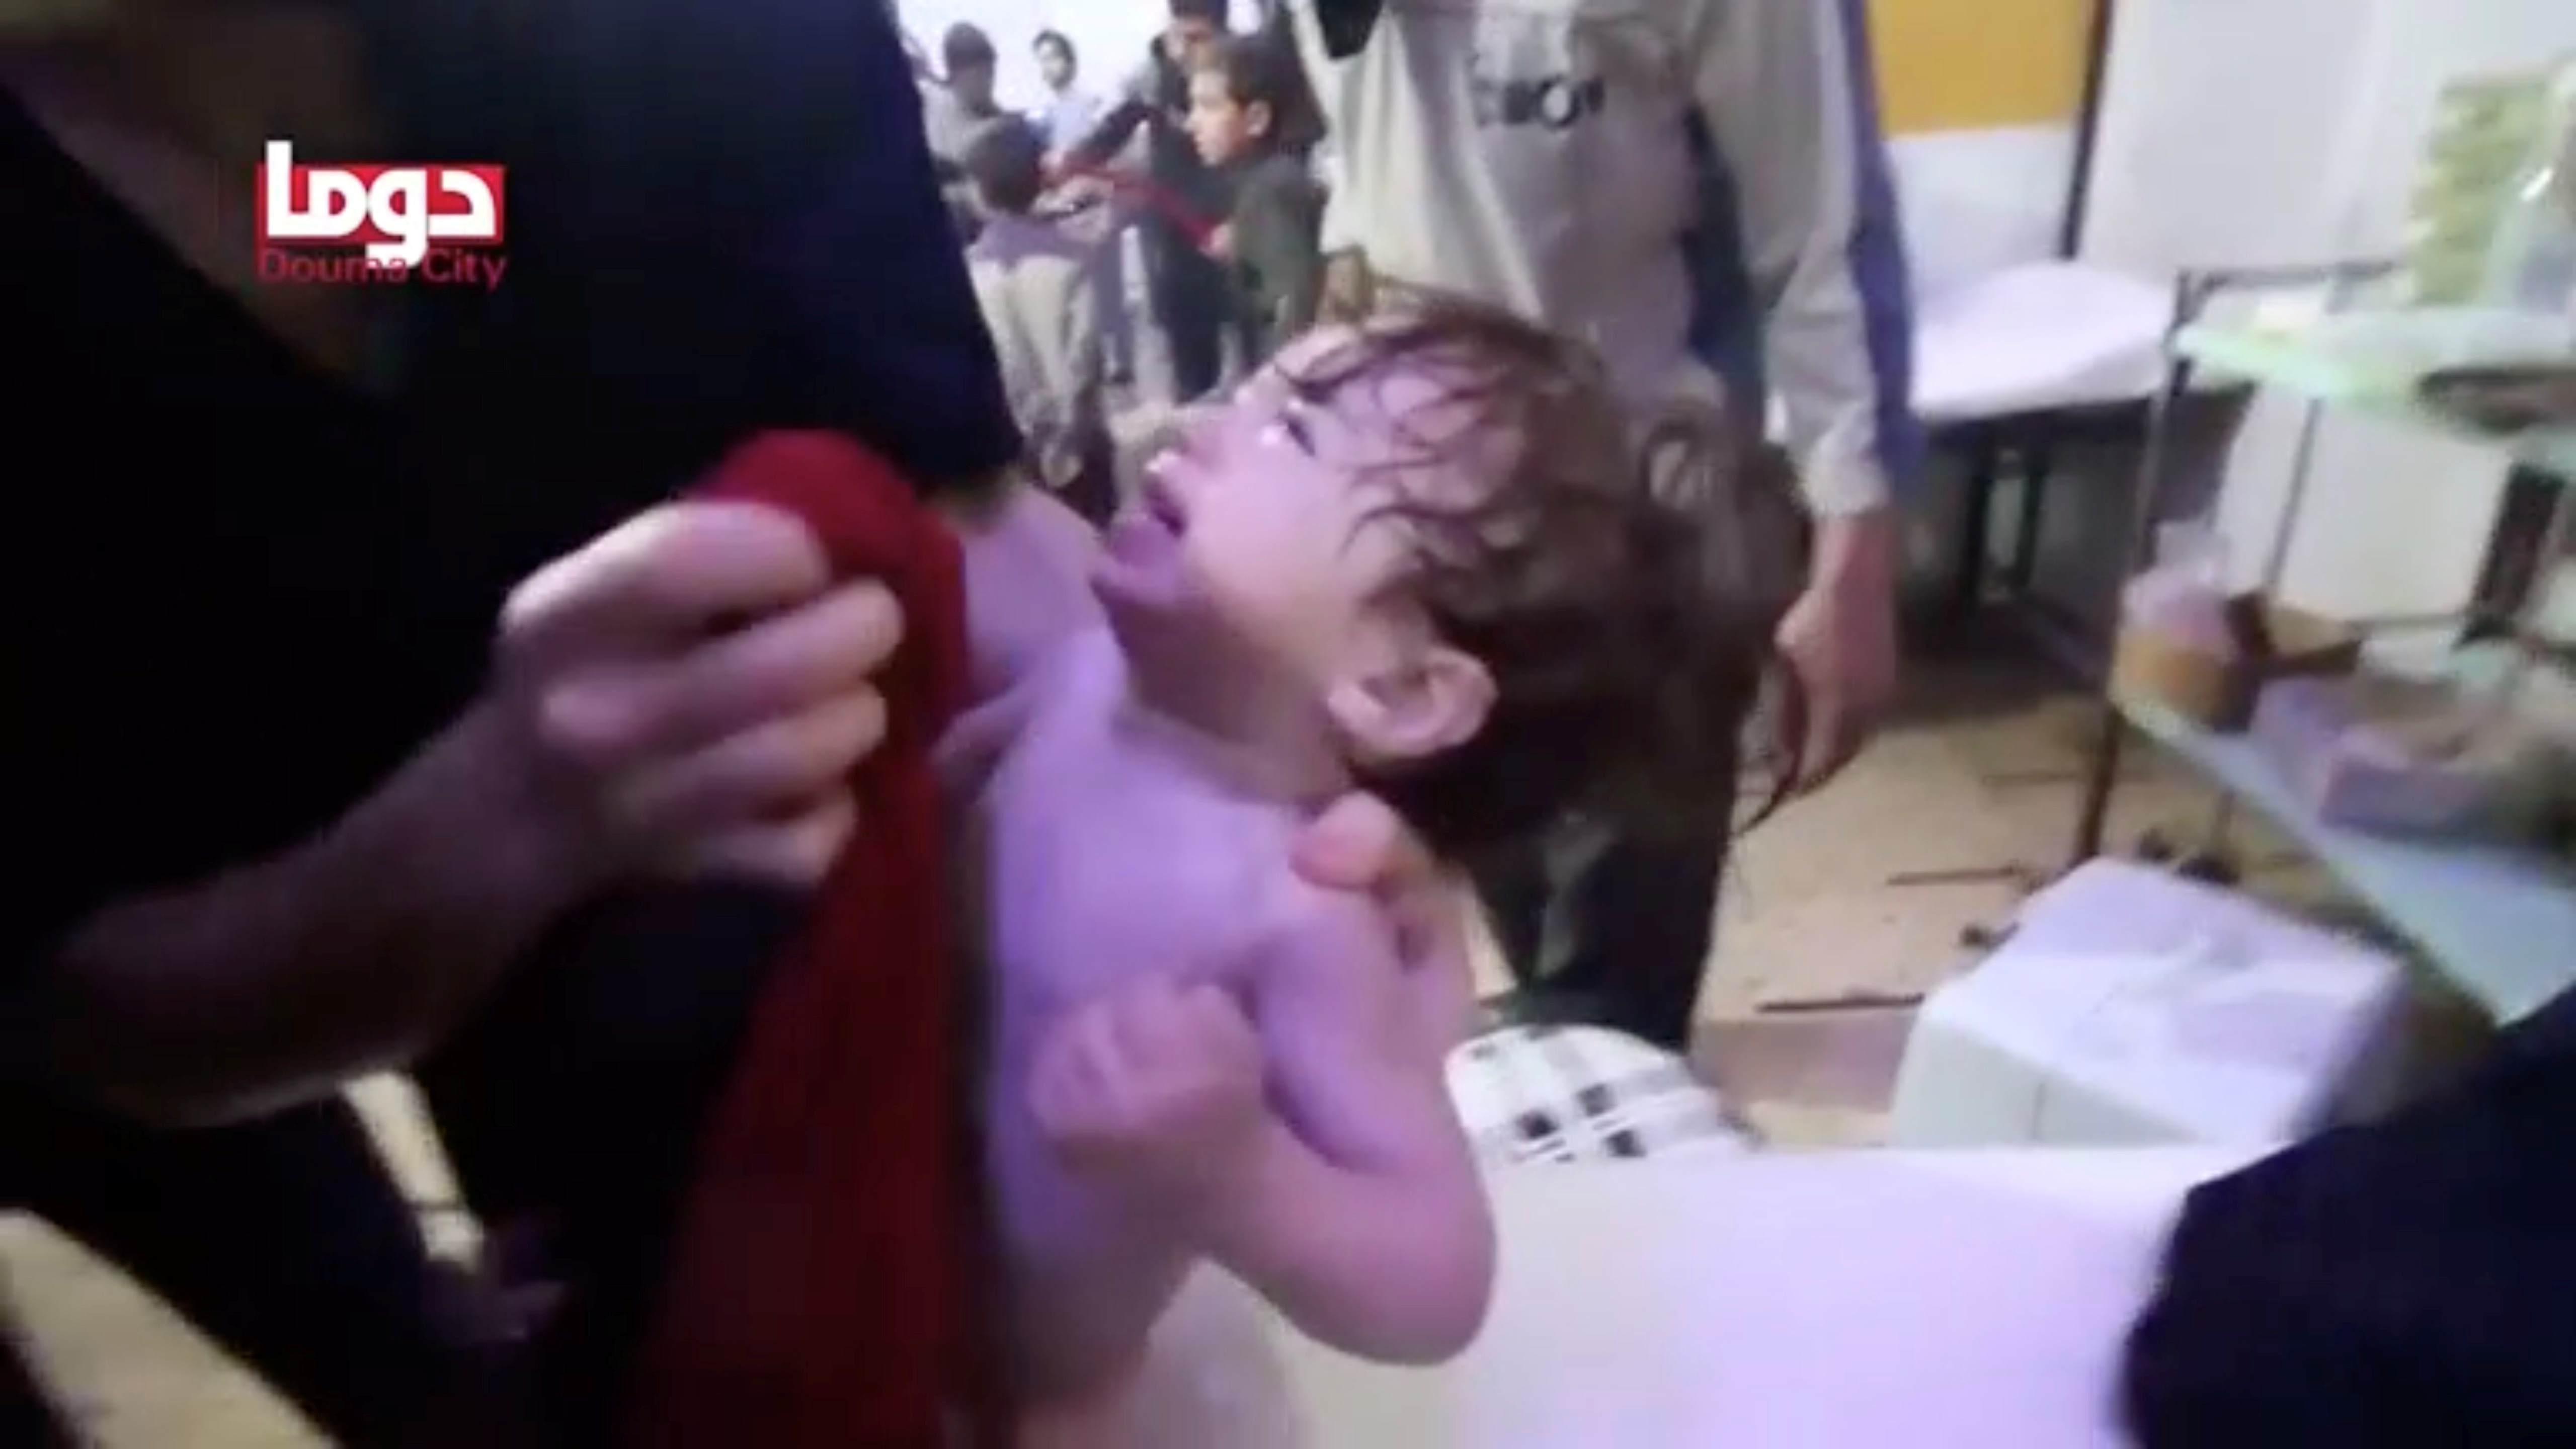 A child cries as they have their face wiped following alleged chemical weapons attack, in what is said to be Douma, Syria in this still image from video obtained by Reuters on April 8, 2018. White Helmets/Reuters TV via REUTERS